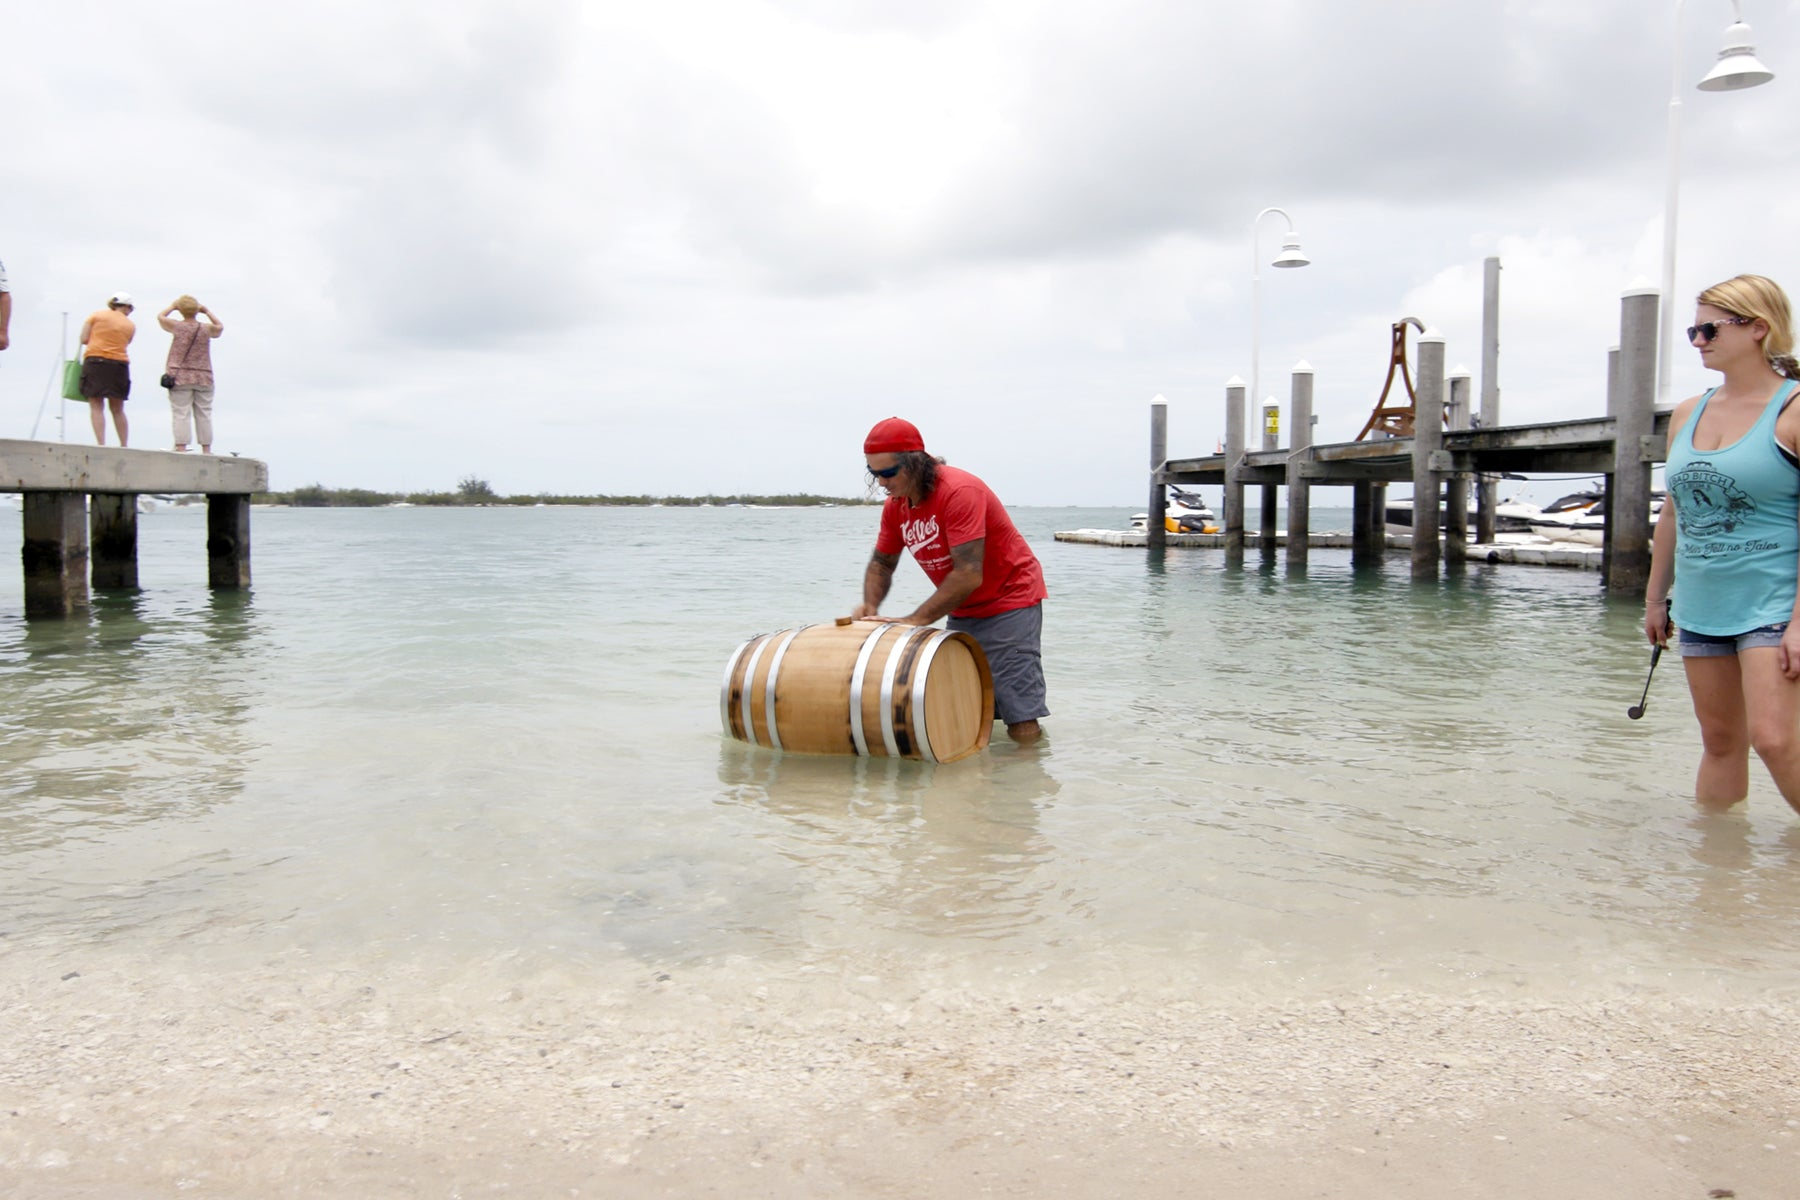 c589e2c97 Paul Menta of Key West Legal Rum Distillery submerges a wooden barrel in  the shallow salt